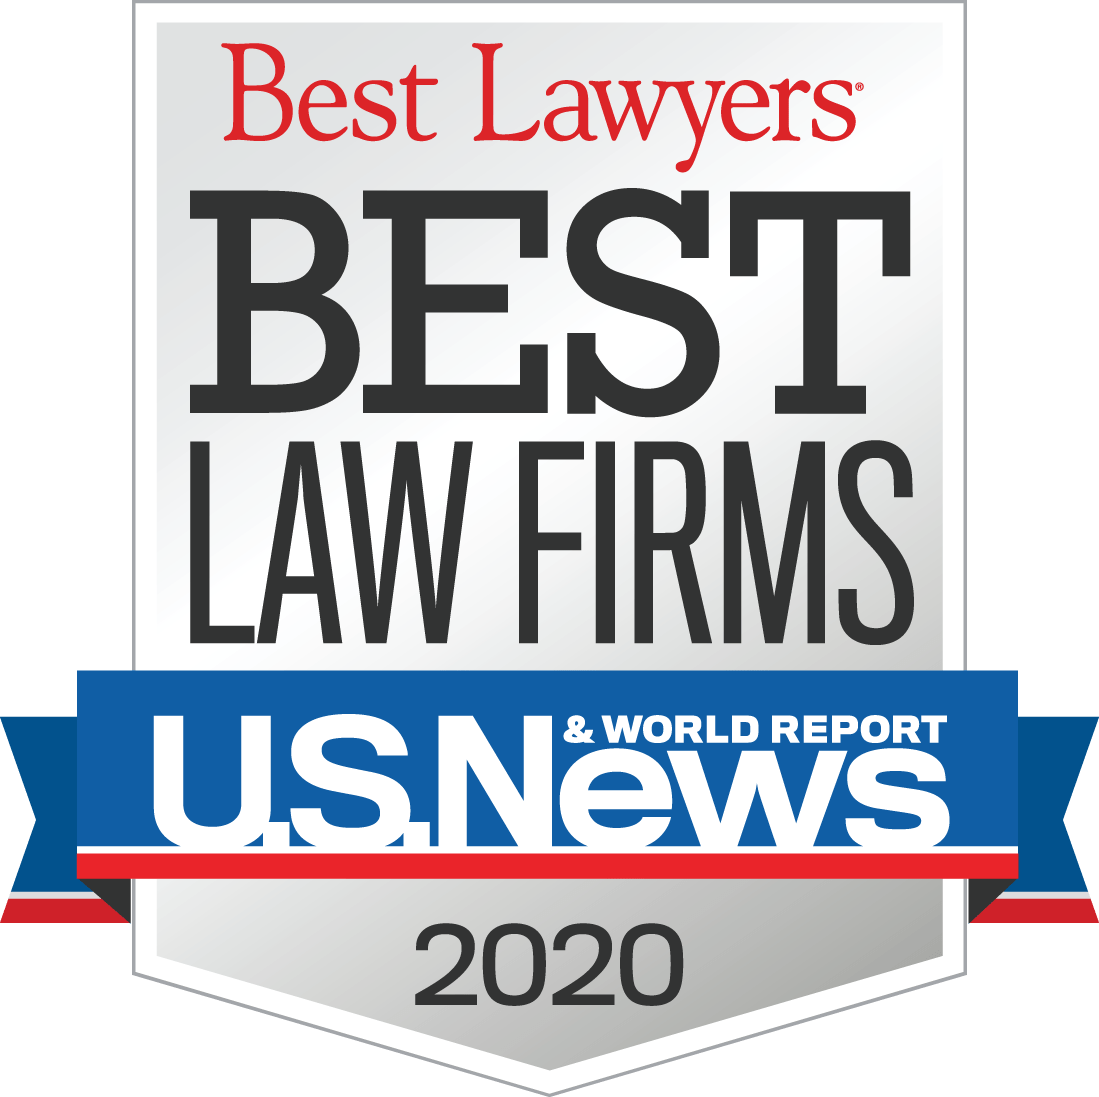 Badge for Best Lawyers Best Law Firms of 2020 for which YVSM was nominated for.